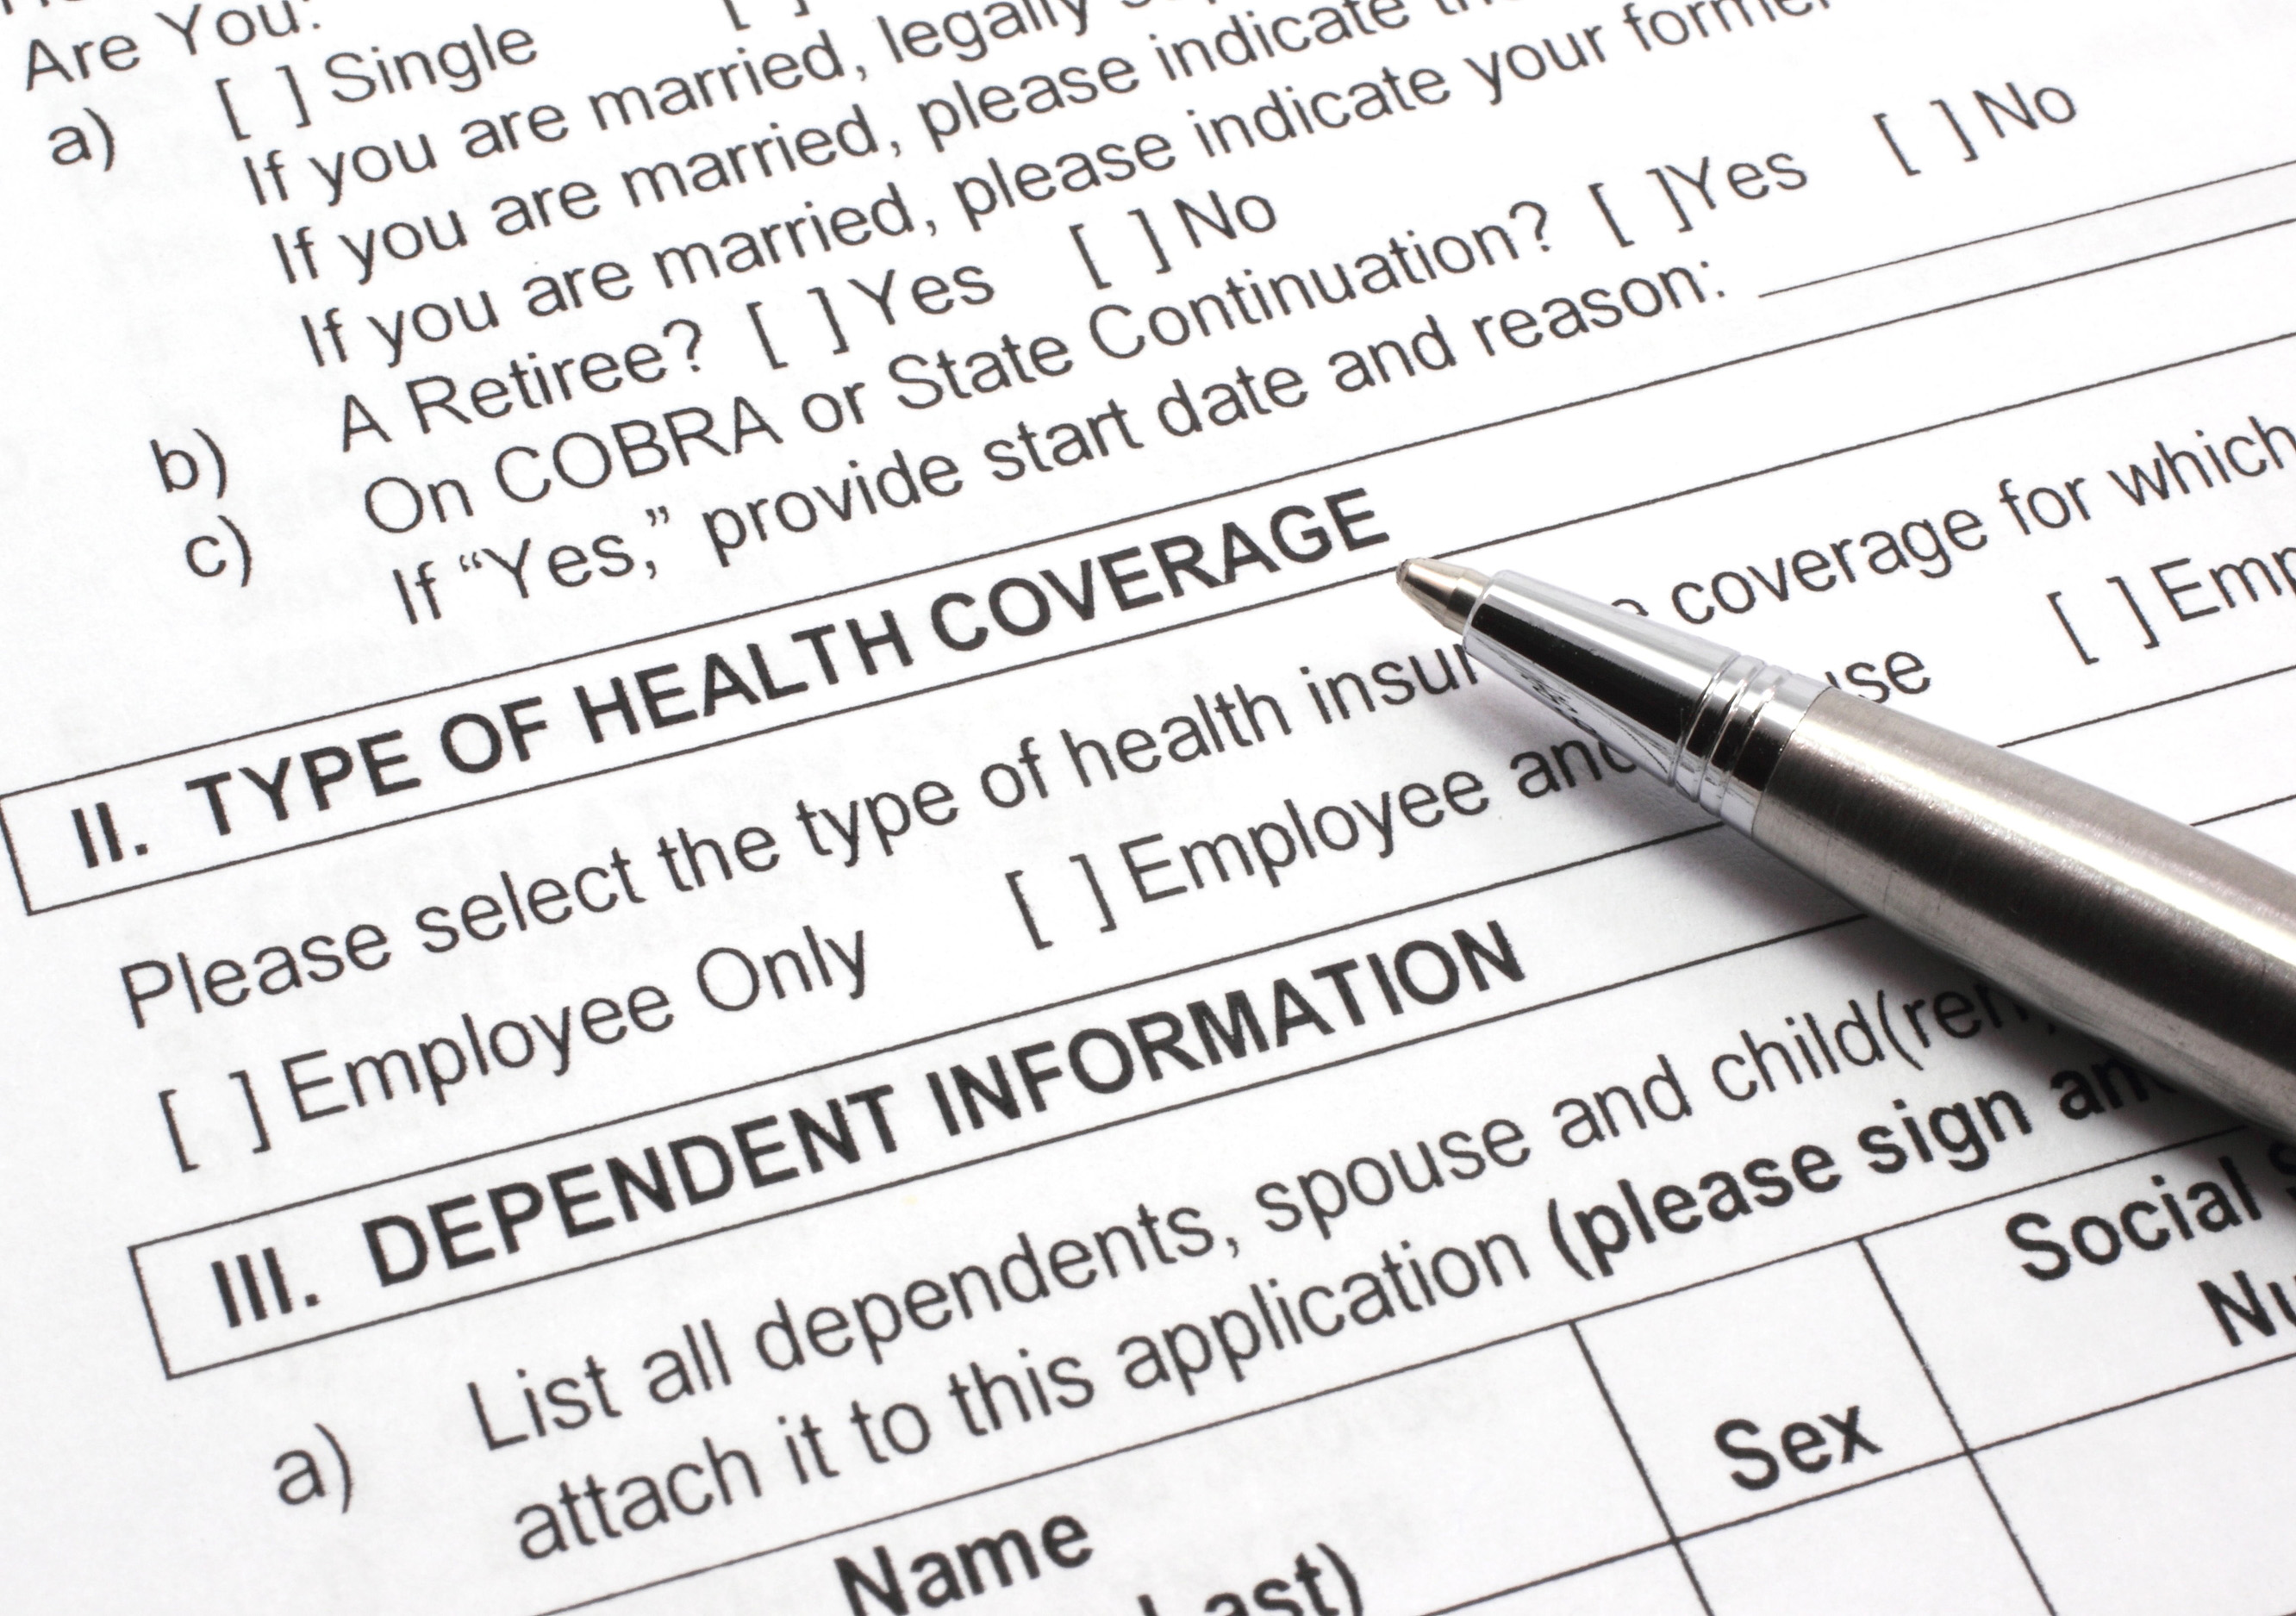 ajc.com - Opinion: Employer-sponsored health insurance plans worth preserving